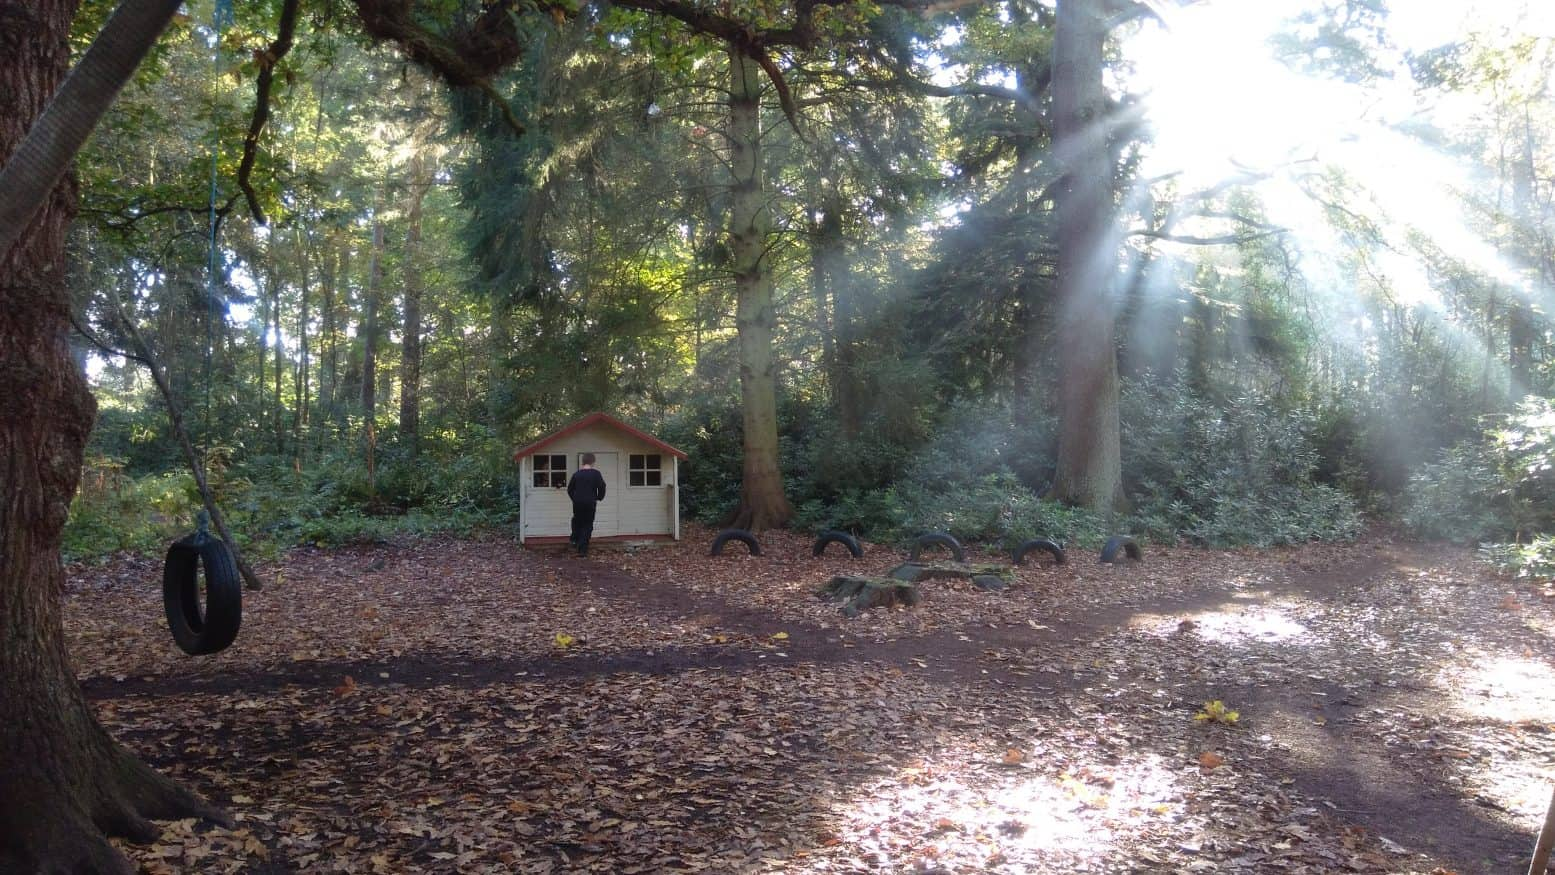 Jollydays Glamping Yorkshire – Campfires and Celestial Fireworks